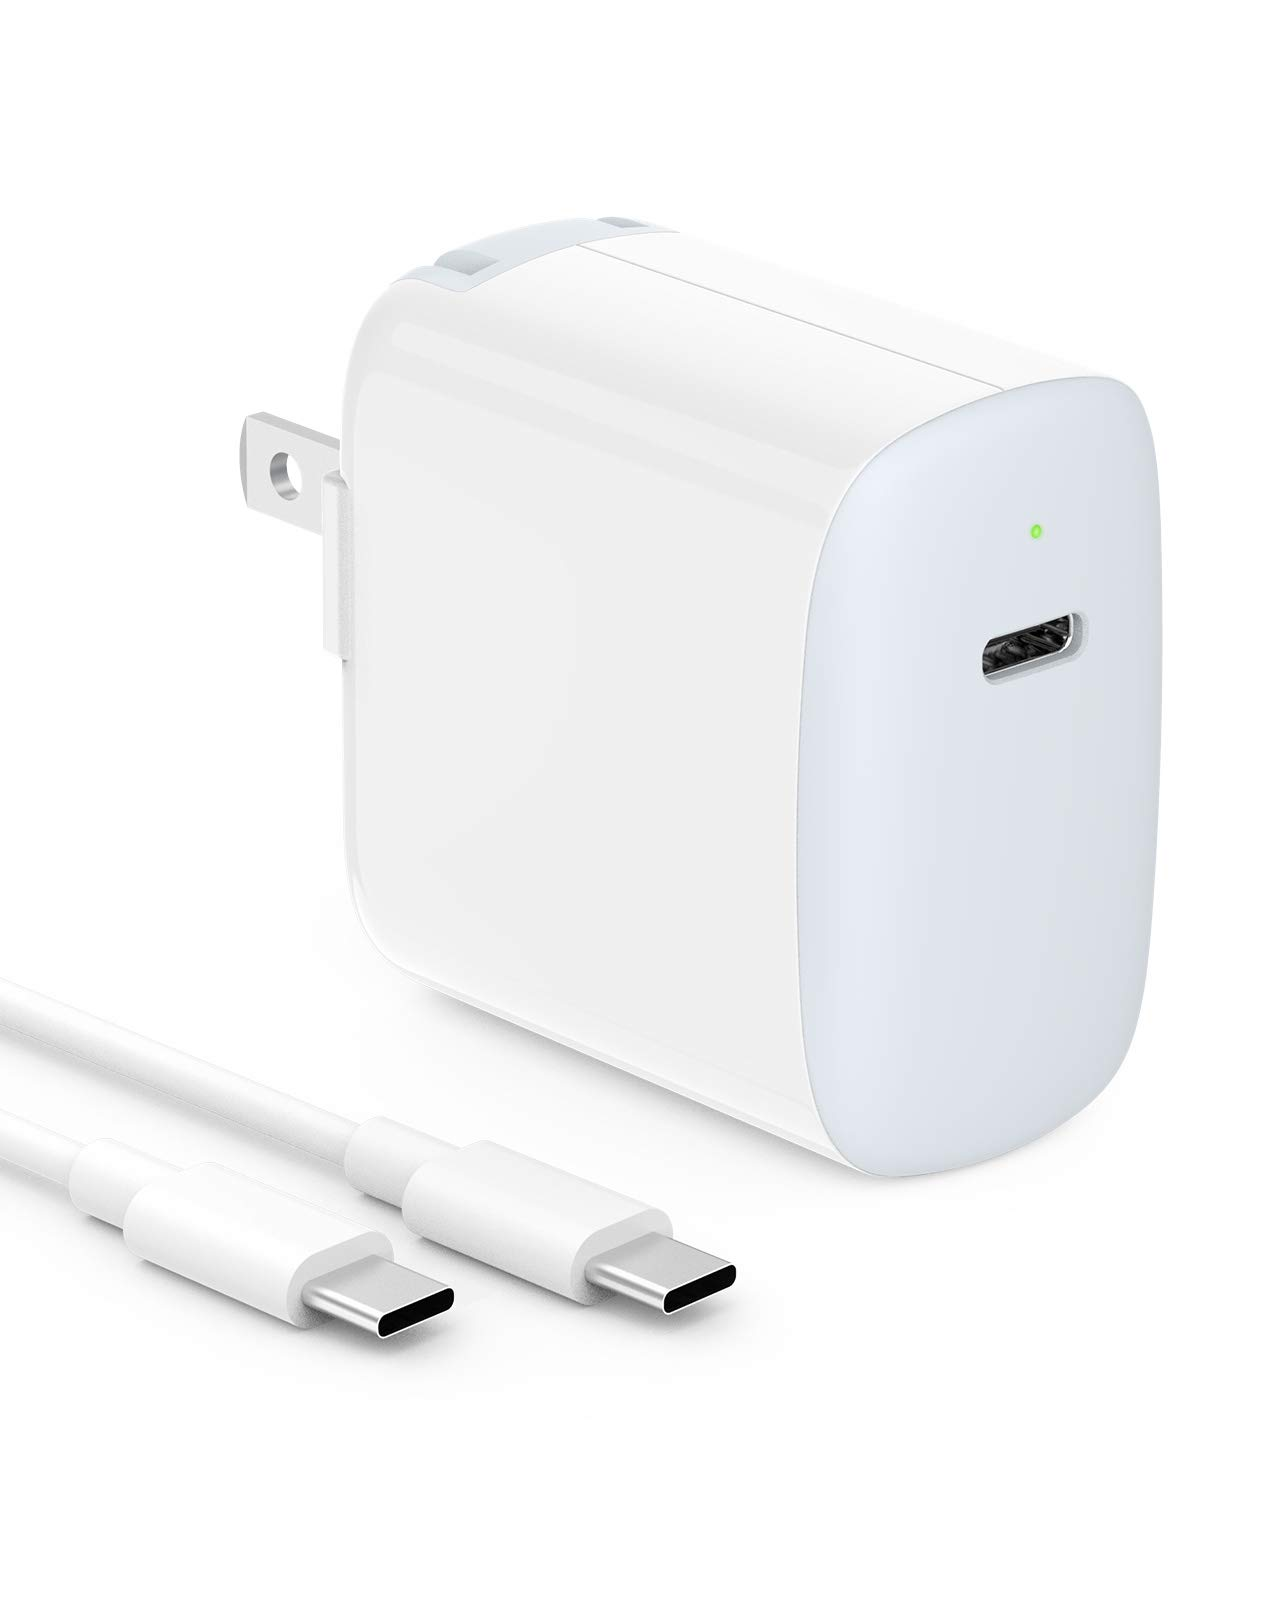 IFEART 30W USB C Fast Charger Compatible with MacBook Air 13 inch, MacBook 12 inch, iPad Pro 12.9/11 inch 2020/2018, iPad Air 4, Thunderbolt 3, 6.6ft USB C to C Cord, LED, Foldable Plug